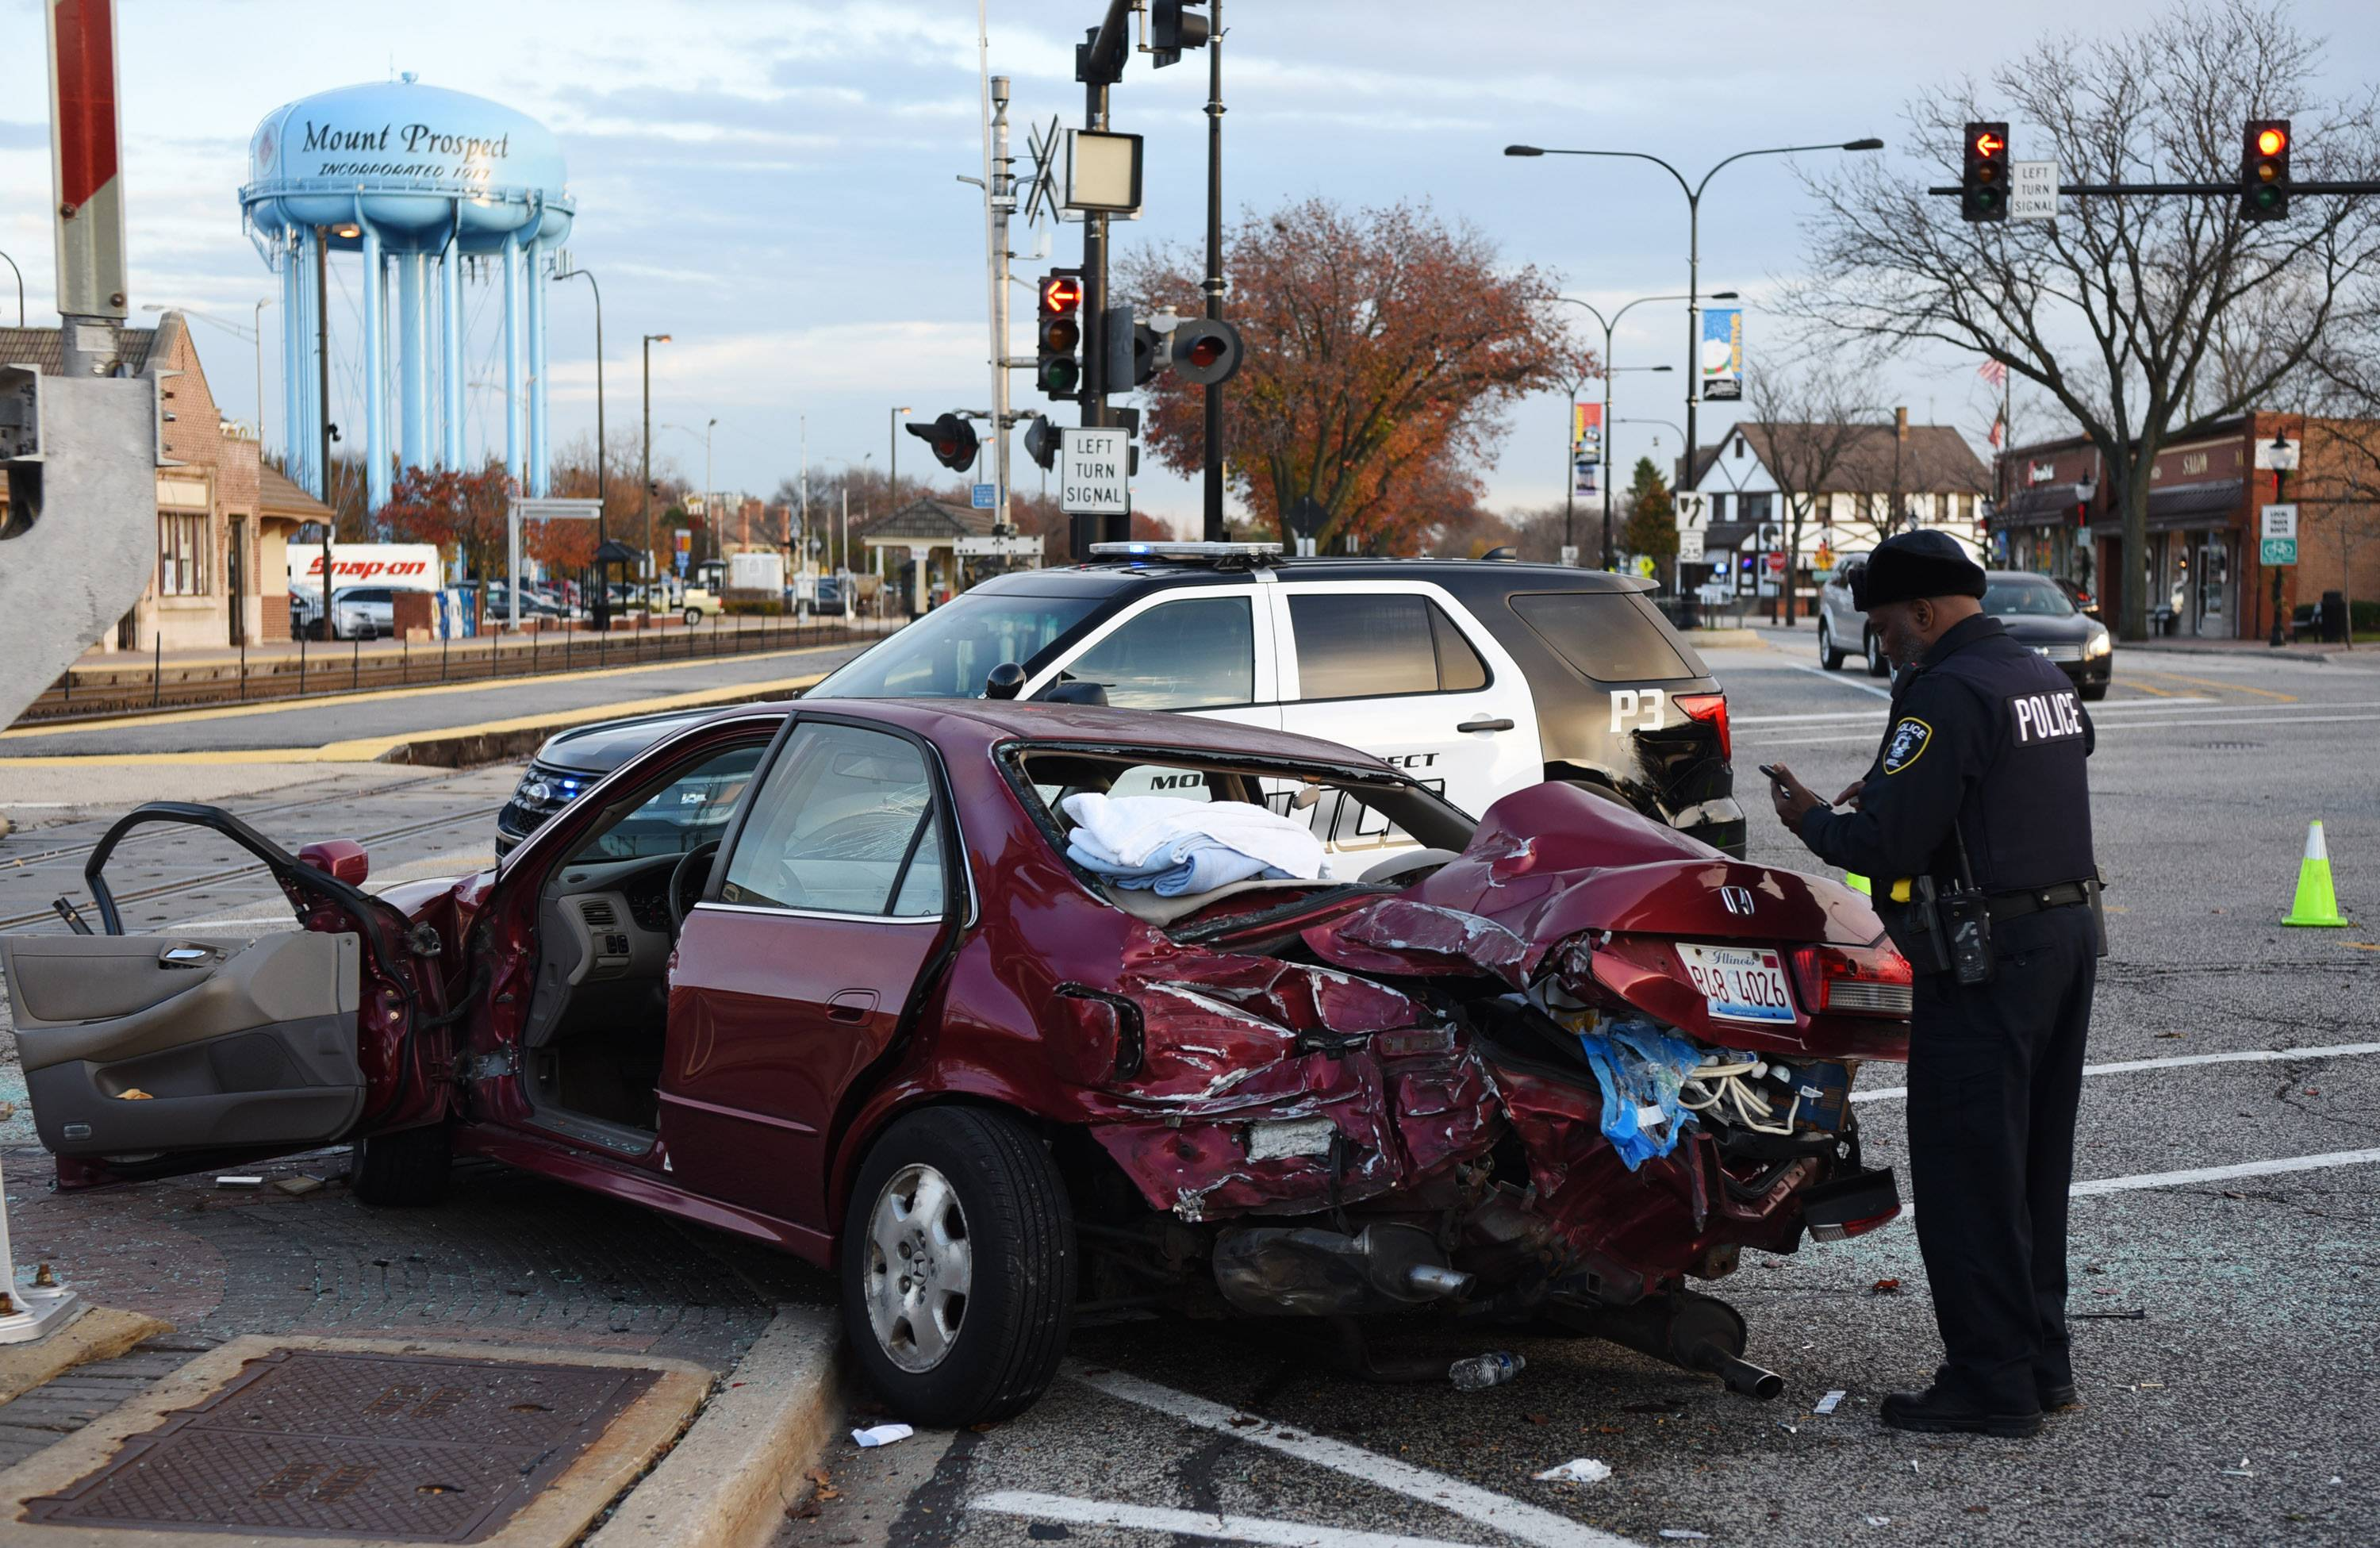 A Metra police officer views a damaged Honda sedan Tuesday after it was struck by a freight train at the intersection of Main Street and Prospect Avenue in Mount Prospect. The driver had to be cut from the car but appeared uninjured.